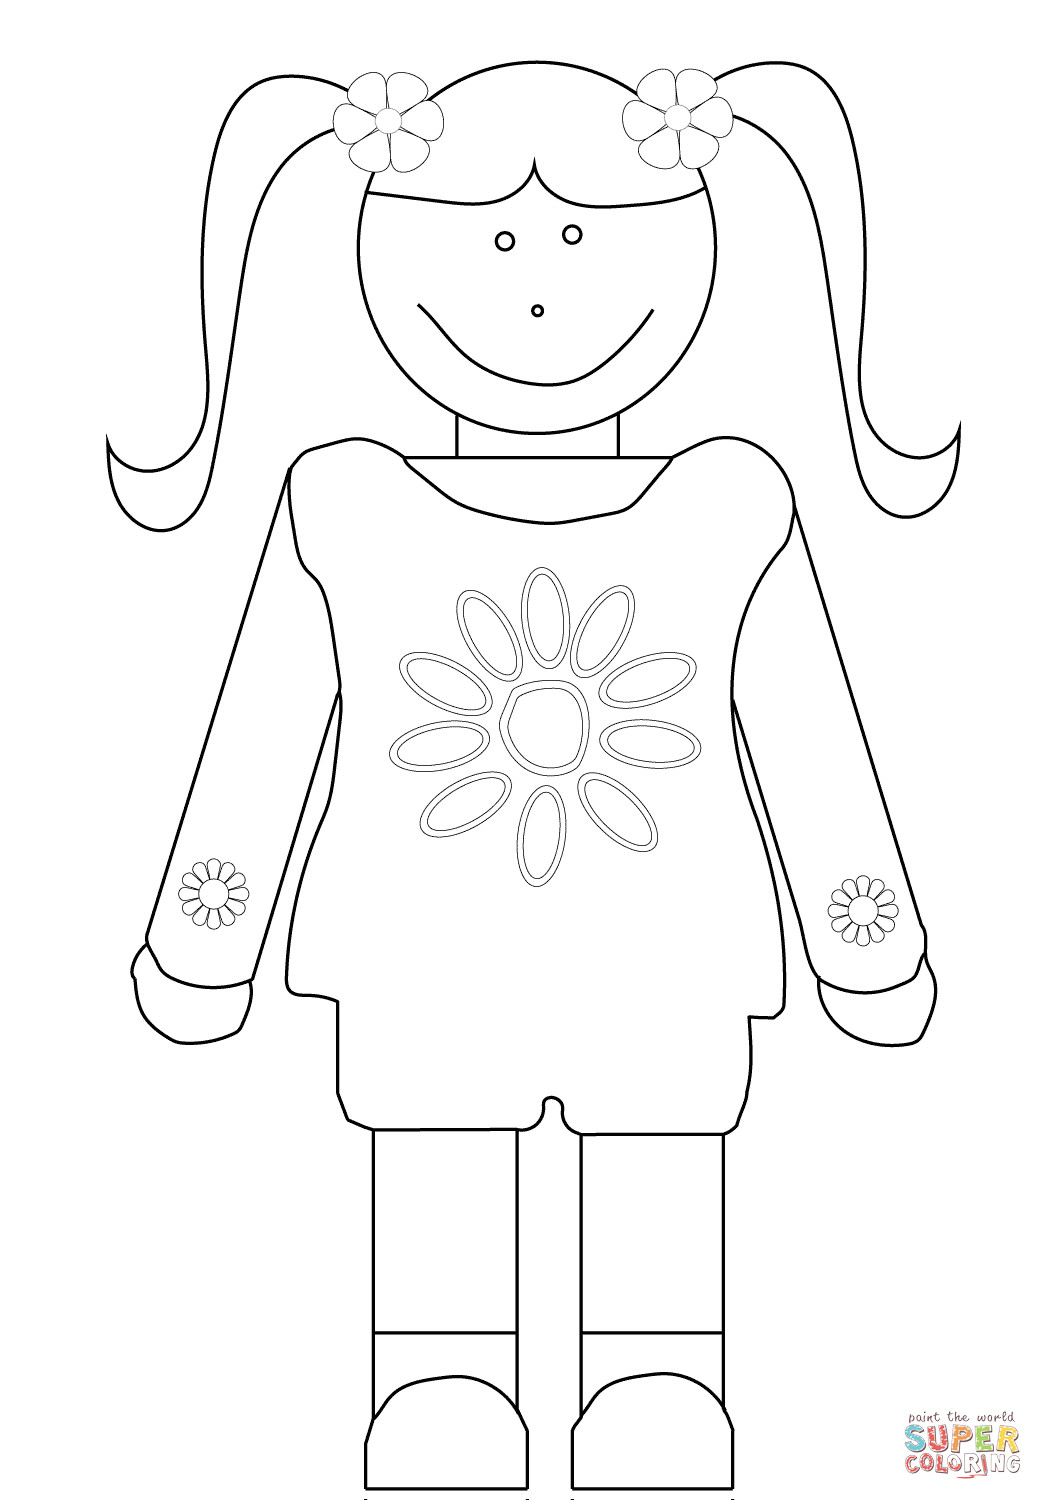 Girl Scout Printable Coloring Pages  daisy girl scout coloring sheets free